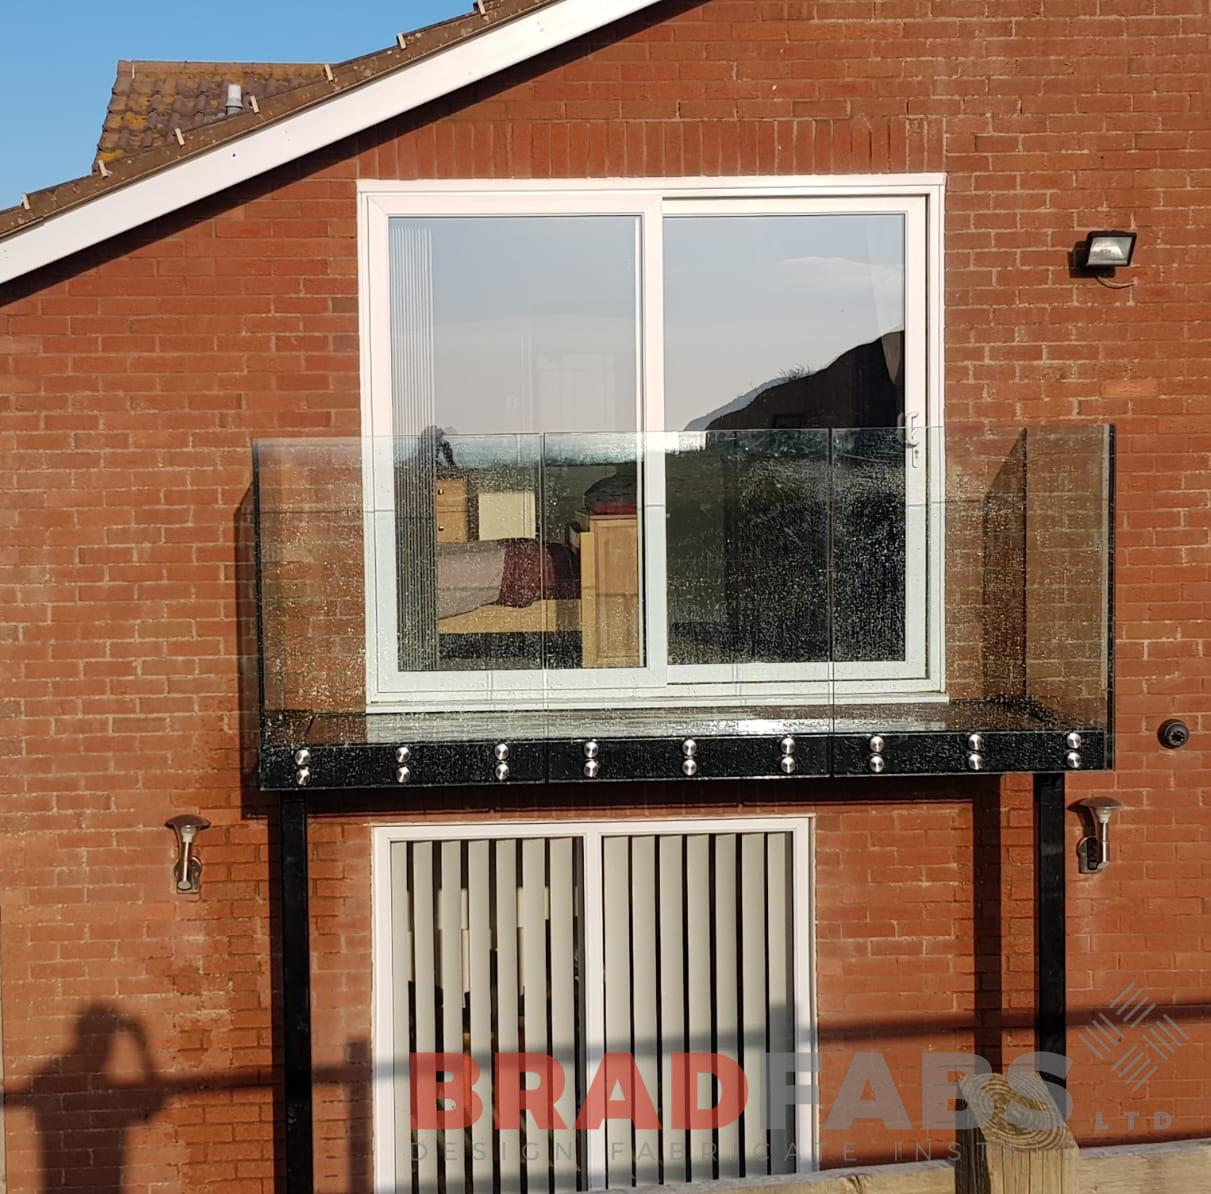 Beautiful baclony with two support legs and very popular front face fixed infinity glass balustrade by Bradfabs